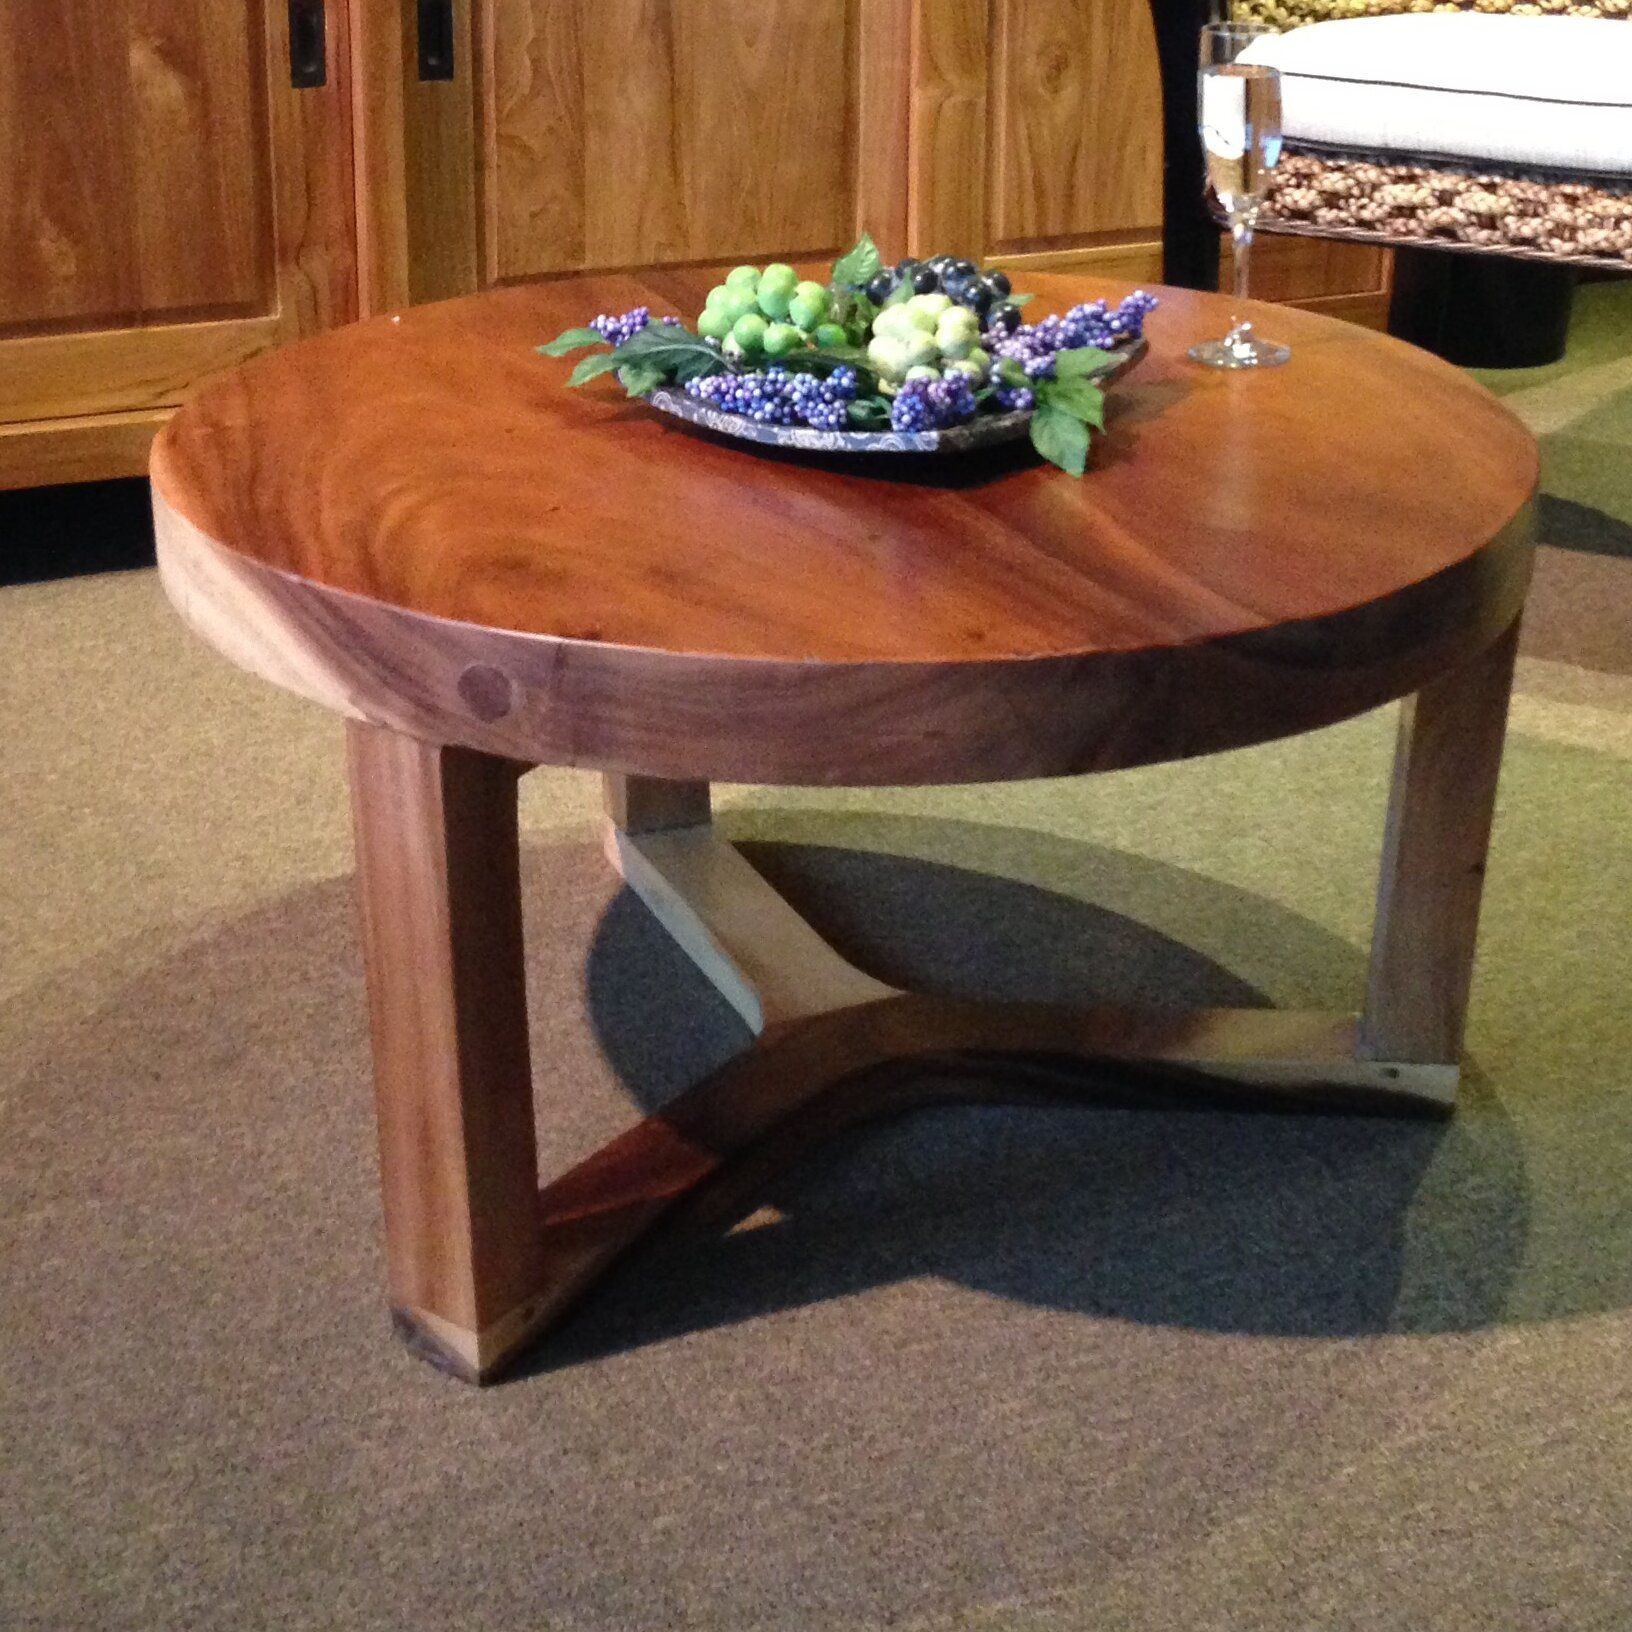 Low Round Teak Coffee Table: ChicTeak Suar Round Coffee Table